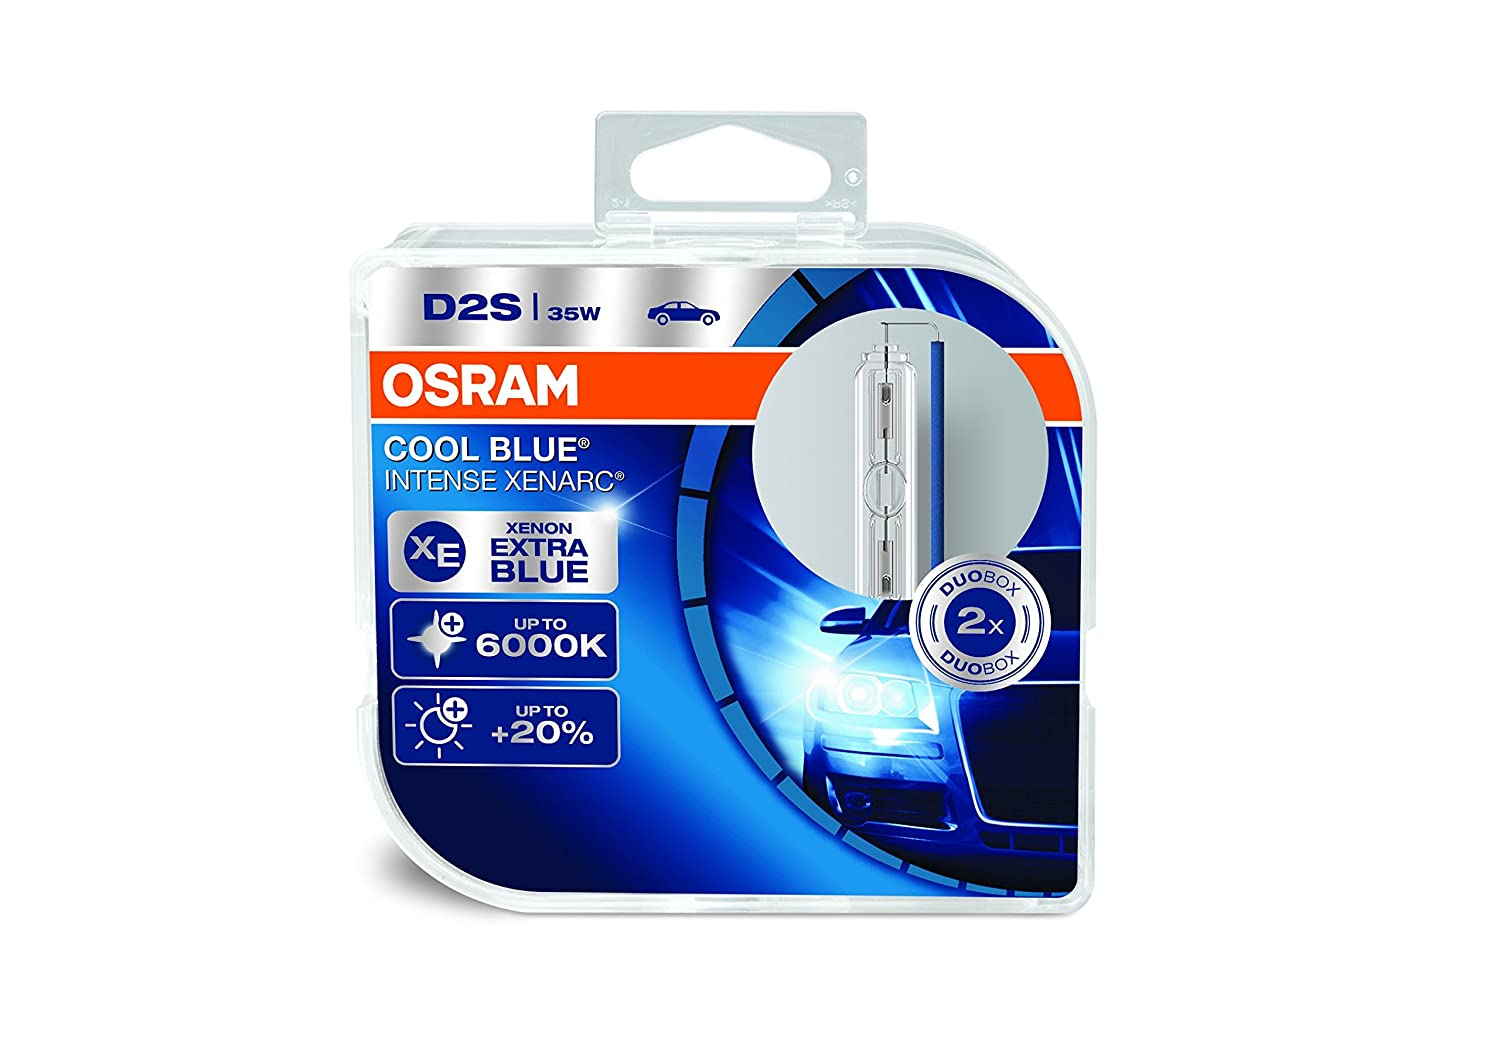 OSRAM Xenarc Cool Blue Intense D2S Xenon Car Headlight Bulbs (Twin) 66240CBI-HCB